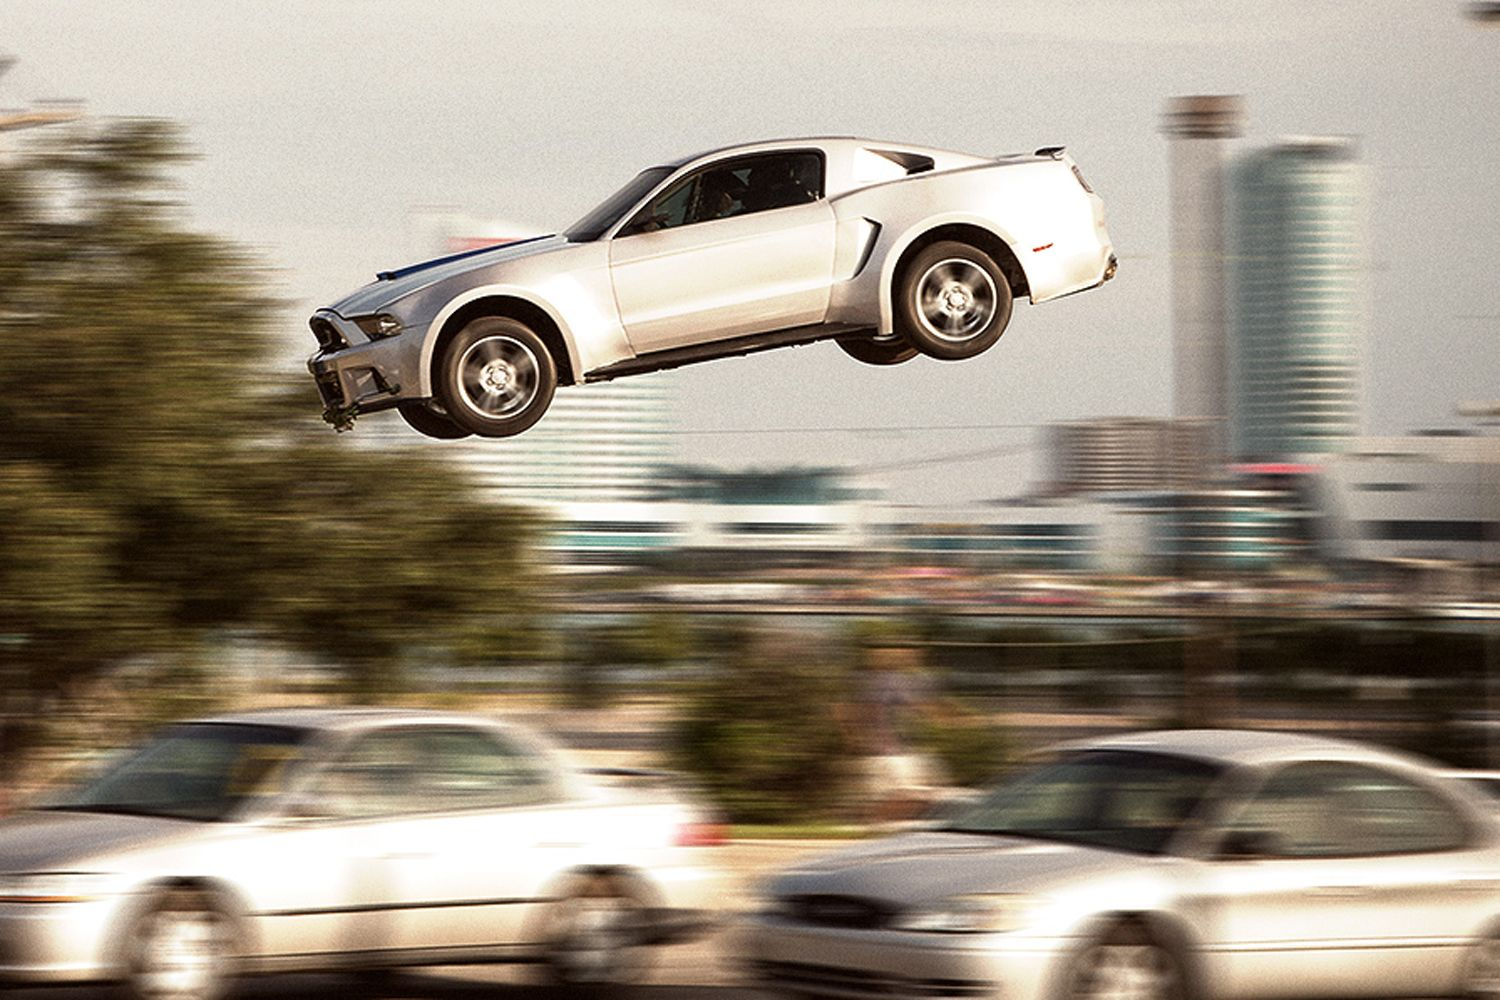 Ford Mustang Flying Need For Speed Movie Photo 3 Aaron